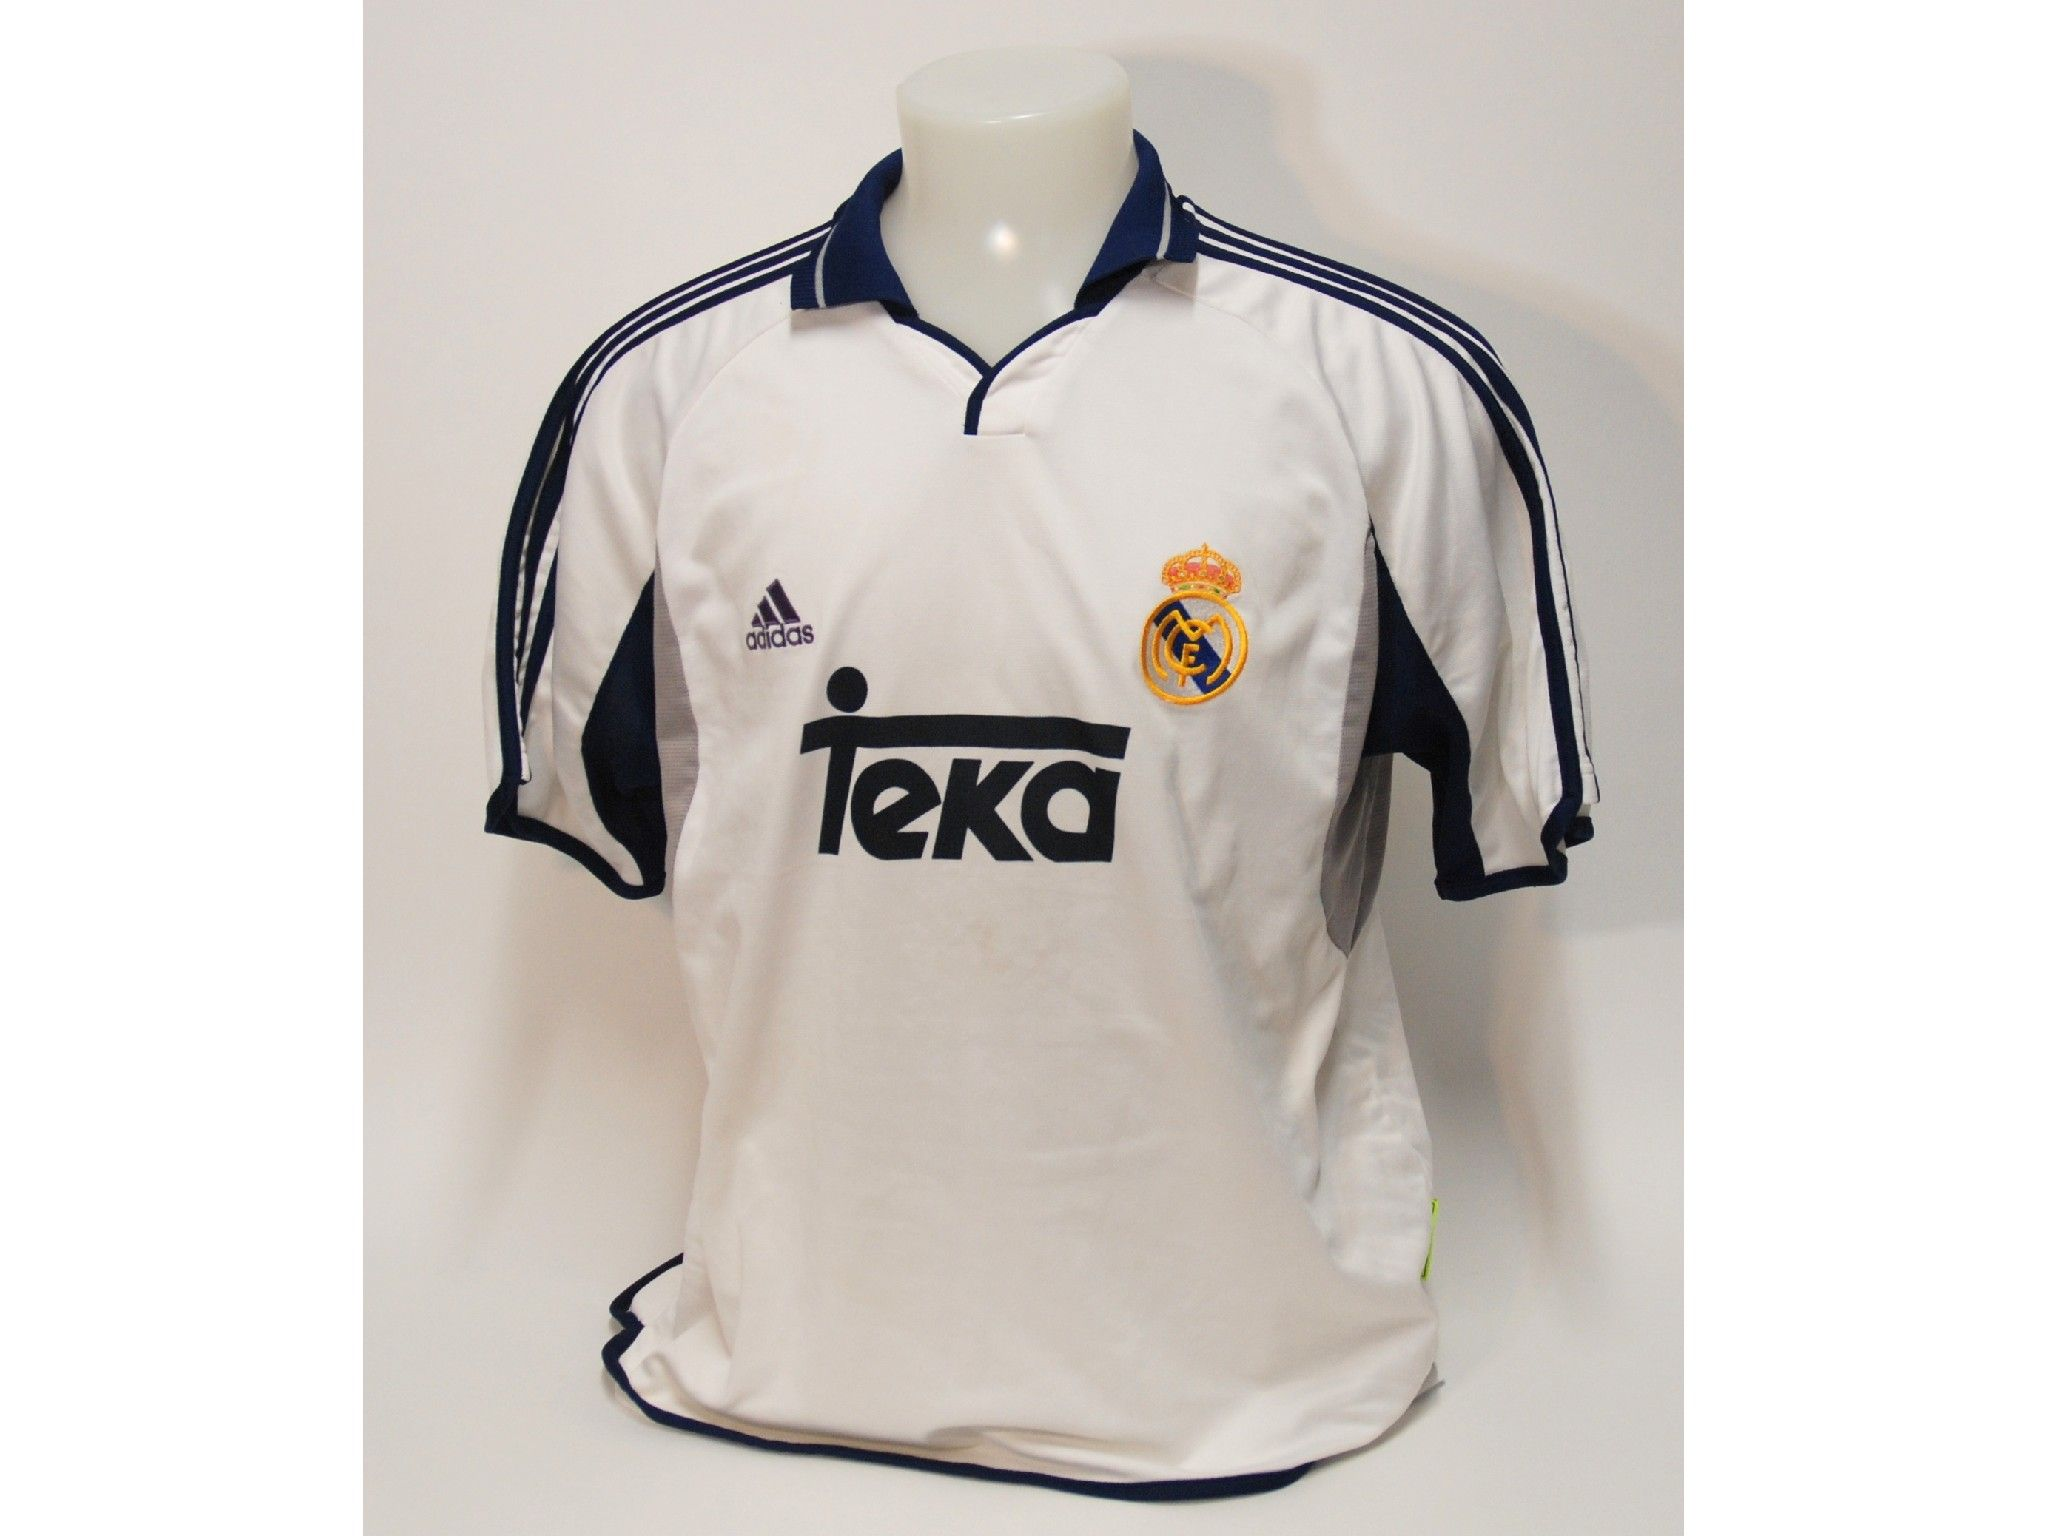 best loved dc35b 1ae8e Real Madrid. 2000 - 2001 Home. #adidas #real #merengue ...